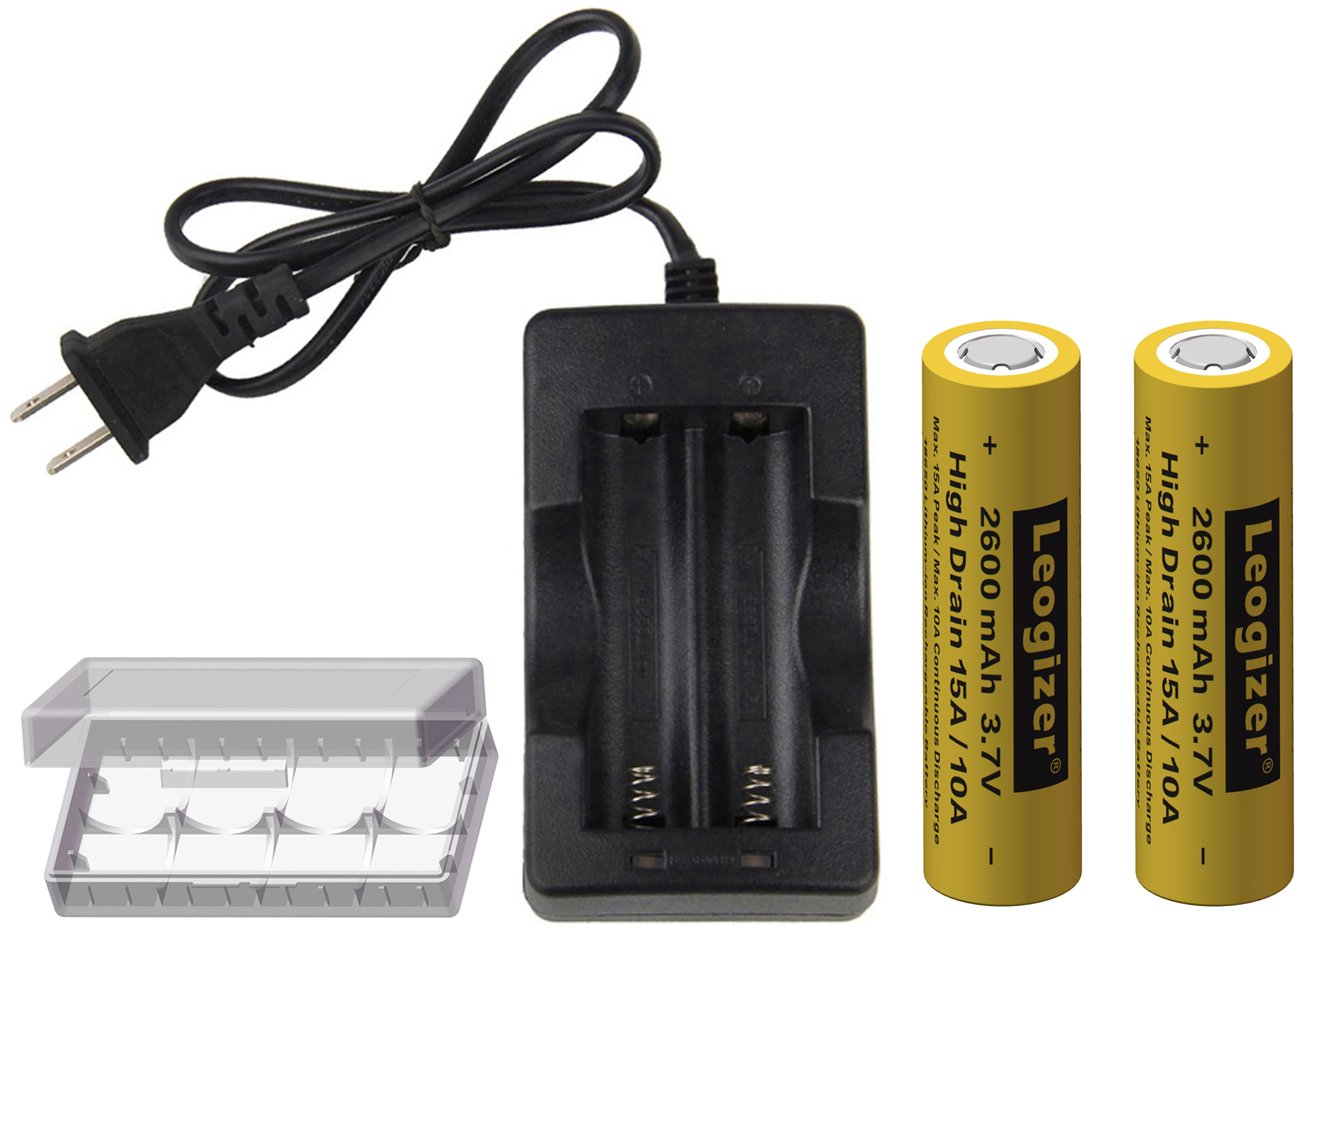 Leogizer PA12B 18650 Battery and Charger Set for LED Flashlight 3.7V Lithium-ion Real 2200mAh Rechargeable Battery with Protection Board Dual-slot Smart Charger and Battery Case Set